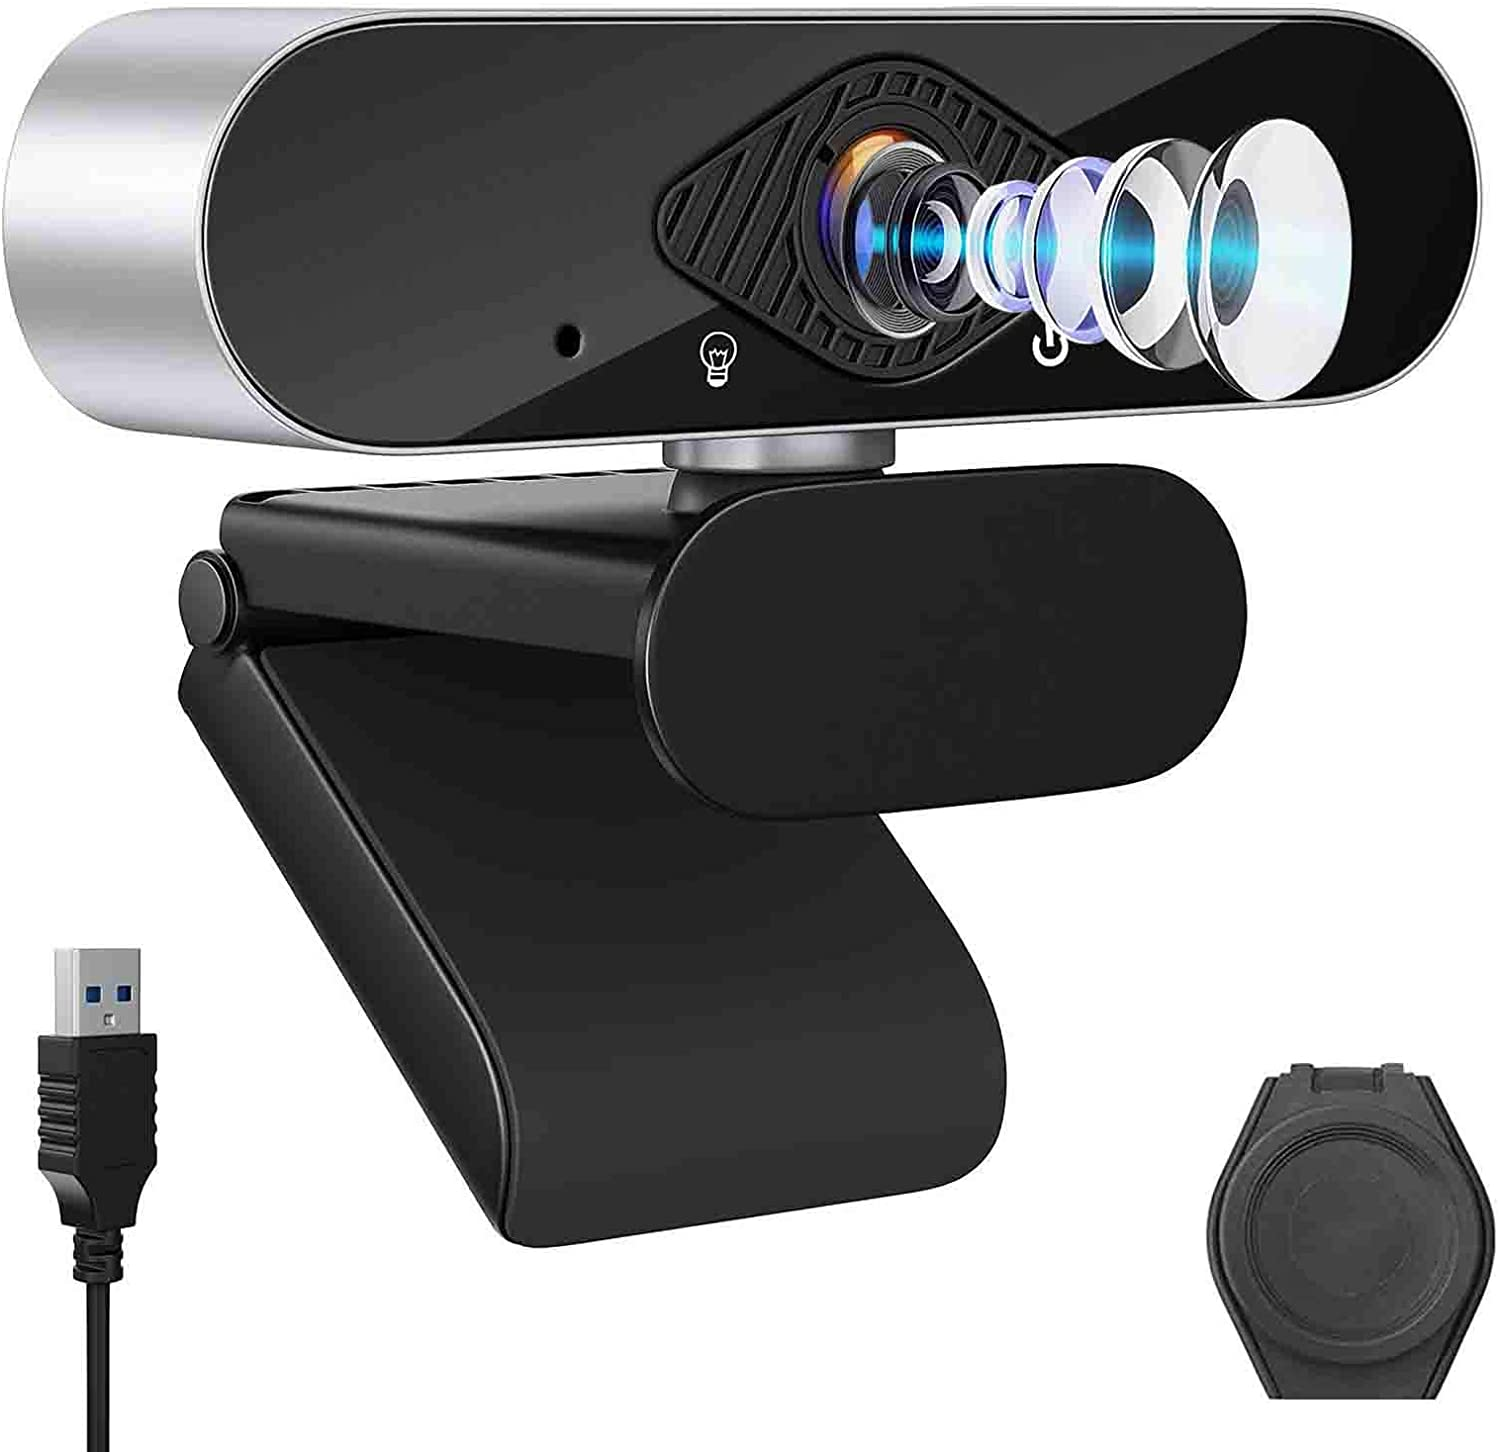 Computer Camera,1080P Webcam with Microphone,Web Cam Plug and Play Desktop and Laptop,Web cam for Windows Mac OS for Video Calls, Streaming,Conference,Online Teaching